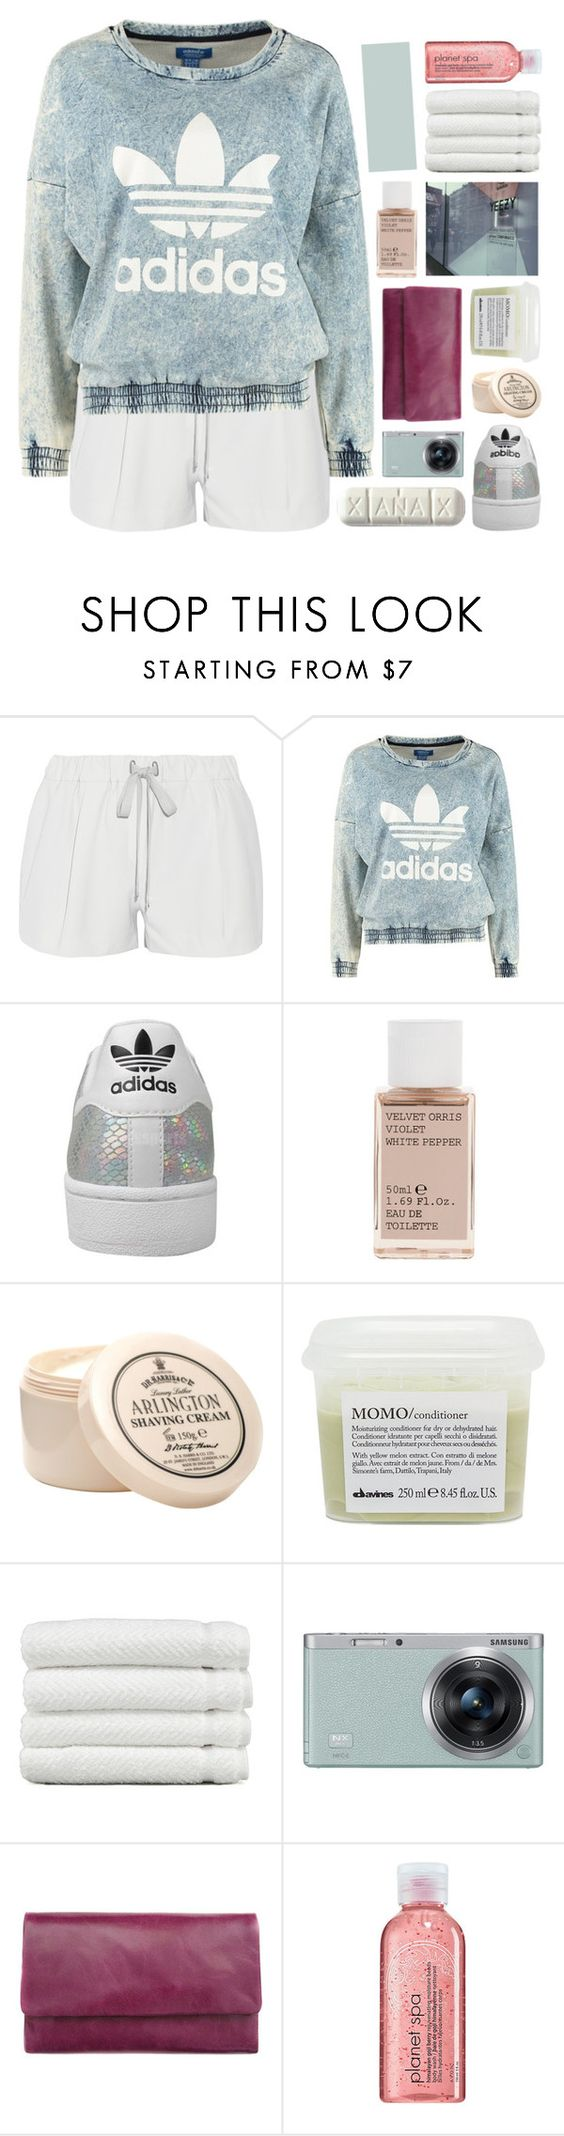 """another friday night i wasted."" by annamari-a ❤ liked on Polyvore featuring Elizabeth and James, adidas Originals, adidas, Korres, Davines, Linum Home Textiles, Samsung, Status Anxiety, Avon and women's clothing"